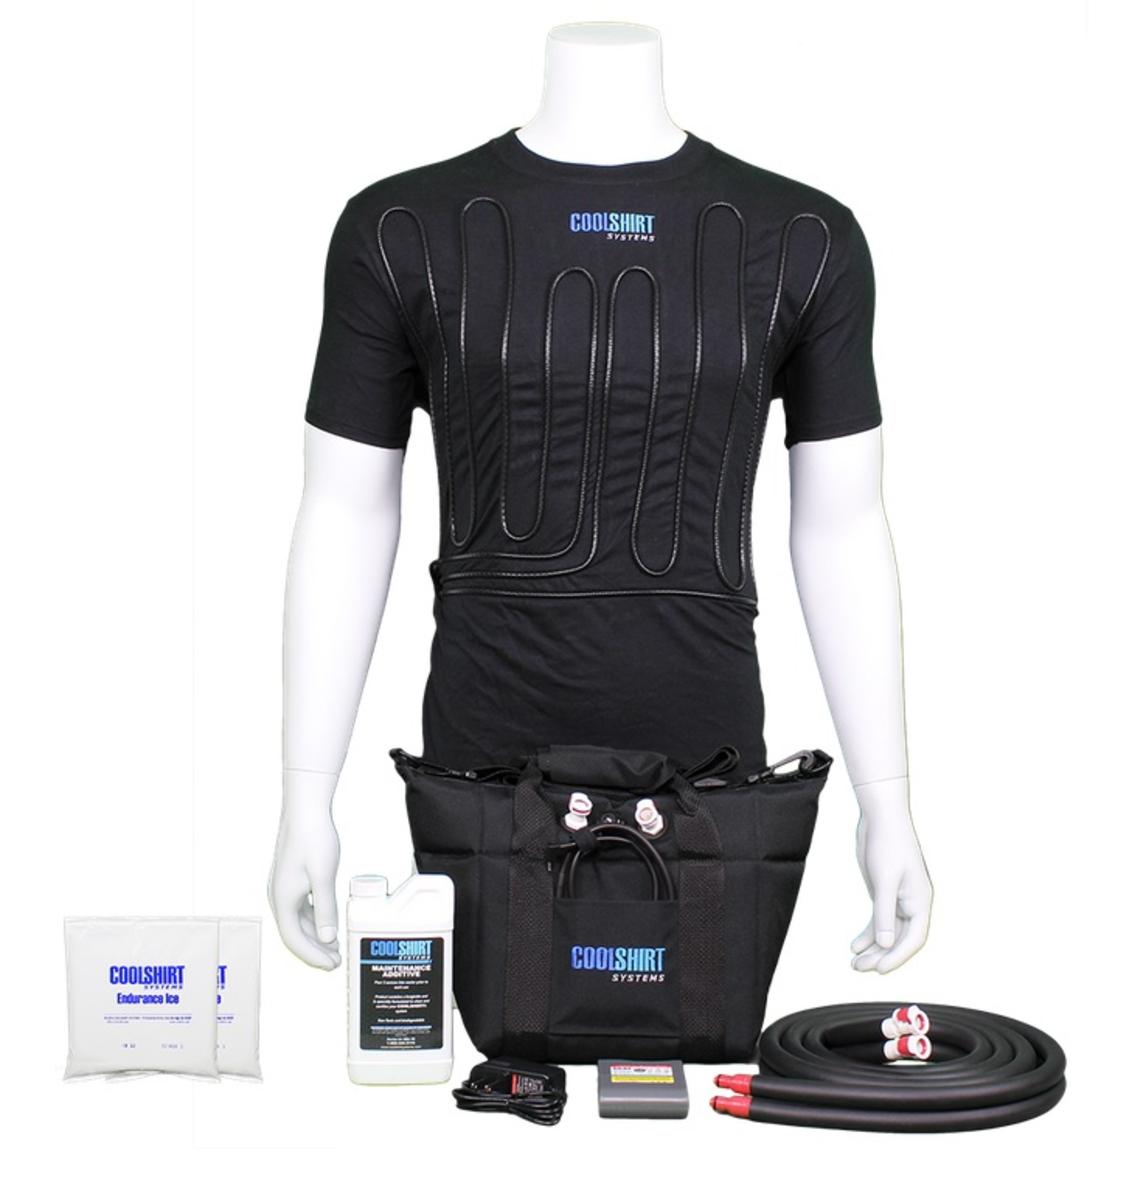 Cool Shirt Systems >> Cool Shirt Mobilecool 2 Coolshirt Complete Kit